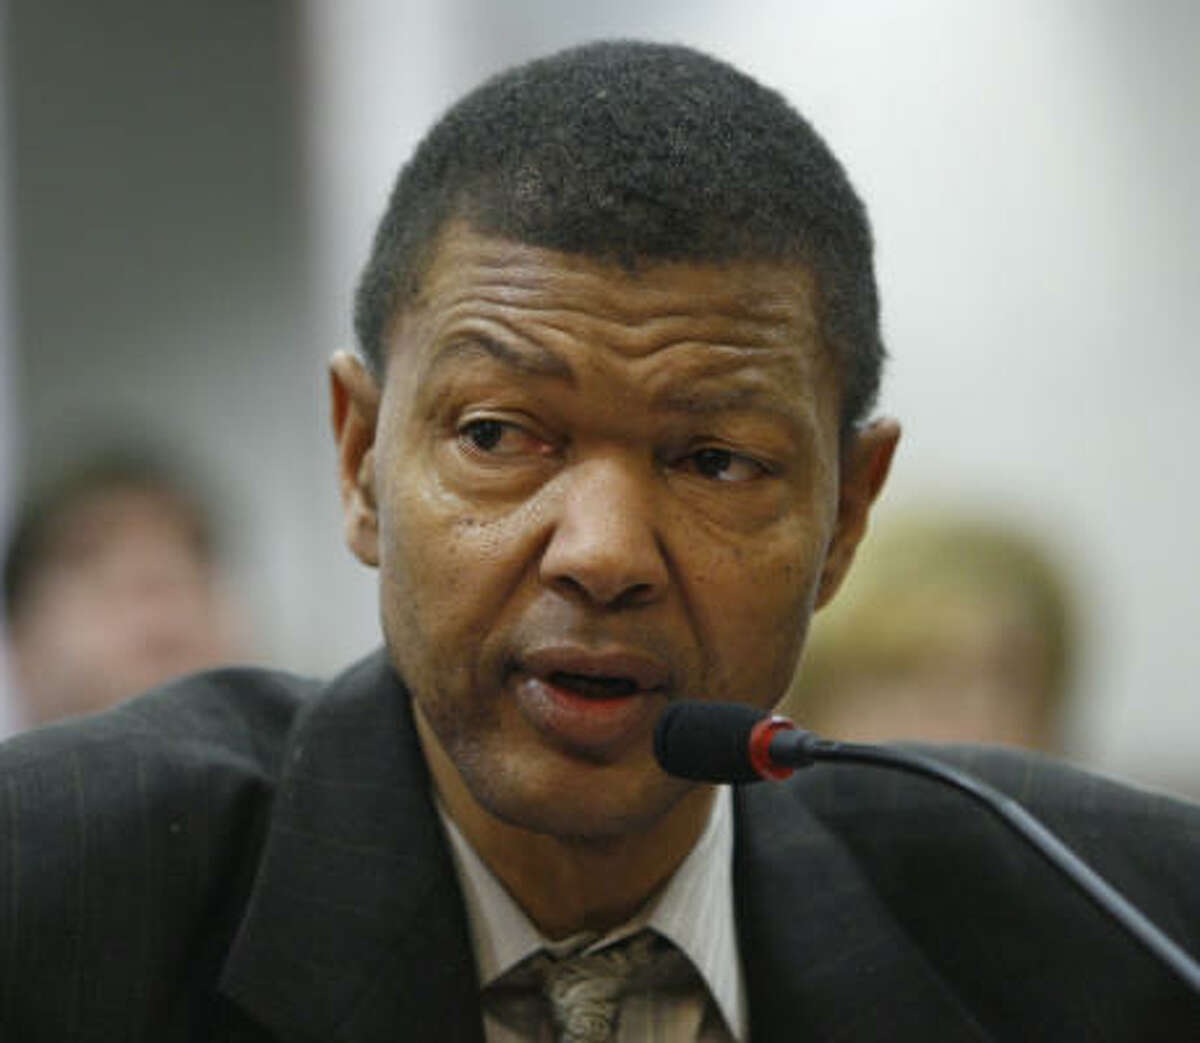 Attorney Gary Bledsoe, president of the Texas NAACP, was tapped Thursday by Gov. Rick Perry to be a member of the new Texas Southern University governing board. Bledsoe will join Glenn Lewis, Javier Loya, Richard Salwen and Richard Holland on the new board if the state Senate confirms Perry's selections.